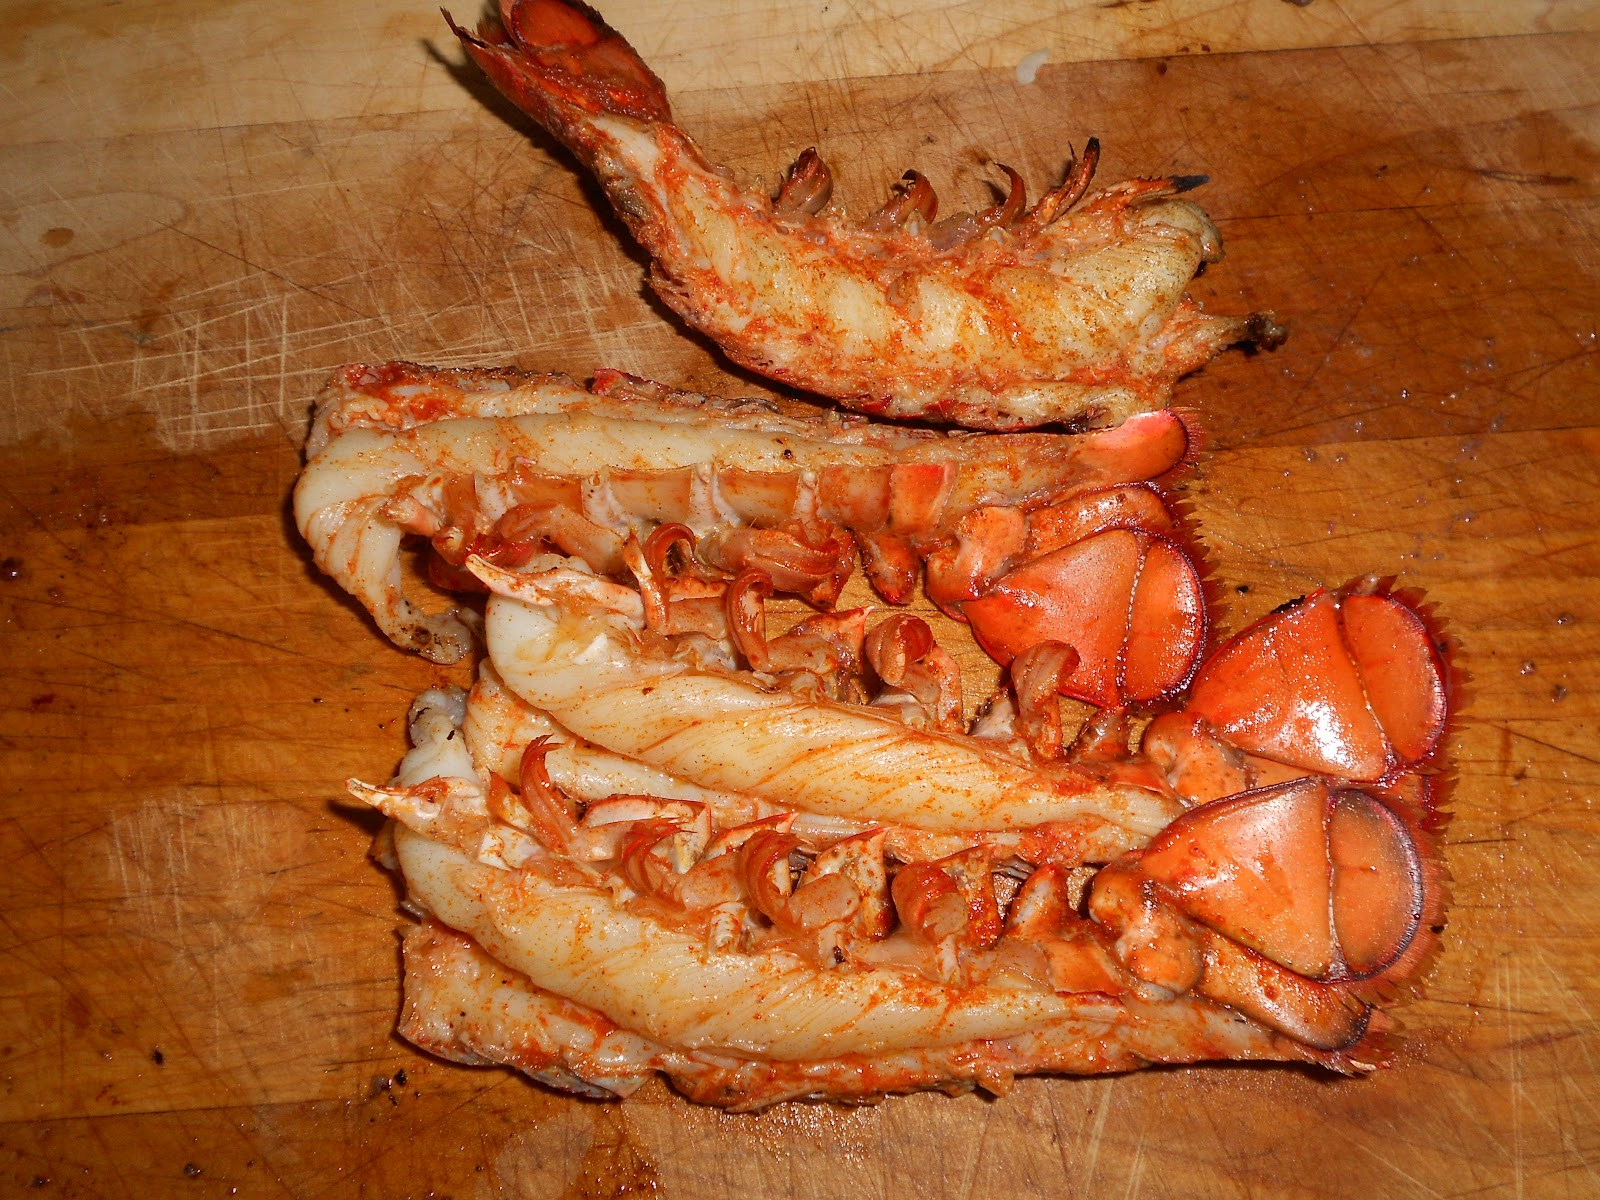 The Pub and Grub Forum: Grilled Lobster Tails